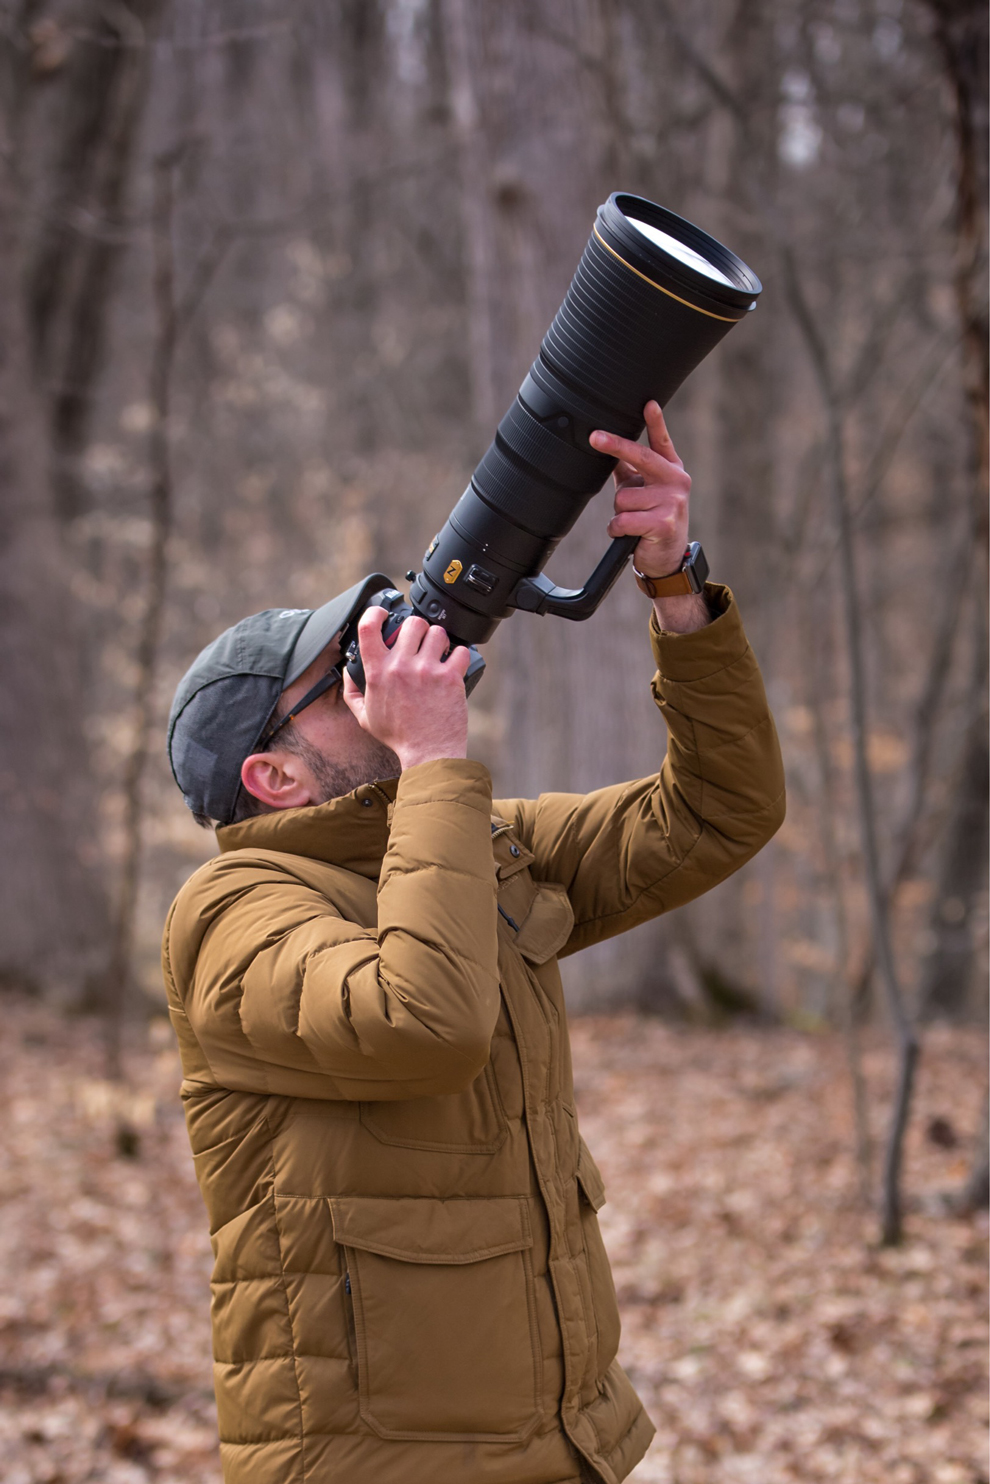 Adam Brandemihl uses a 600mm lens at Highbanks to pursue his bird photography passion